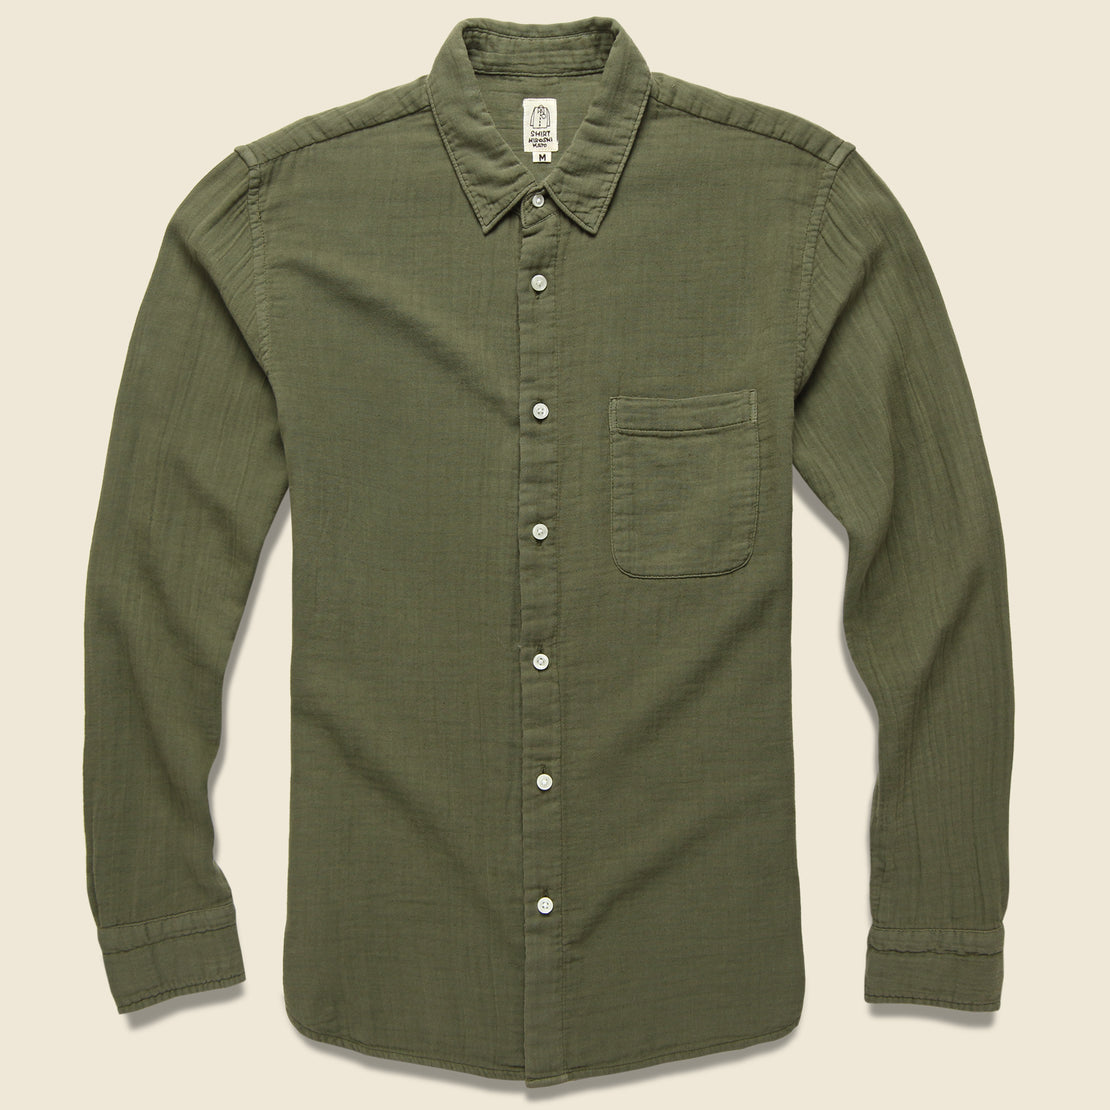 KATO Vintage Double Gauze Shirt - Military Green